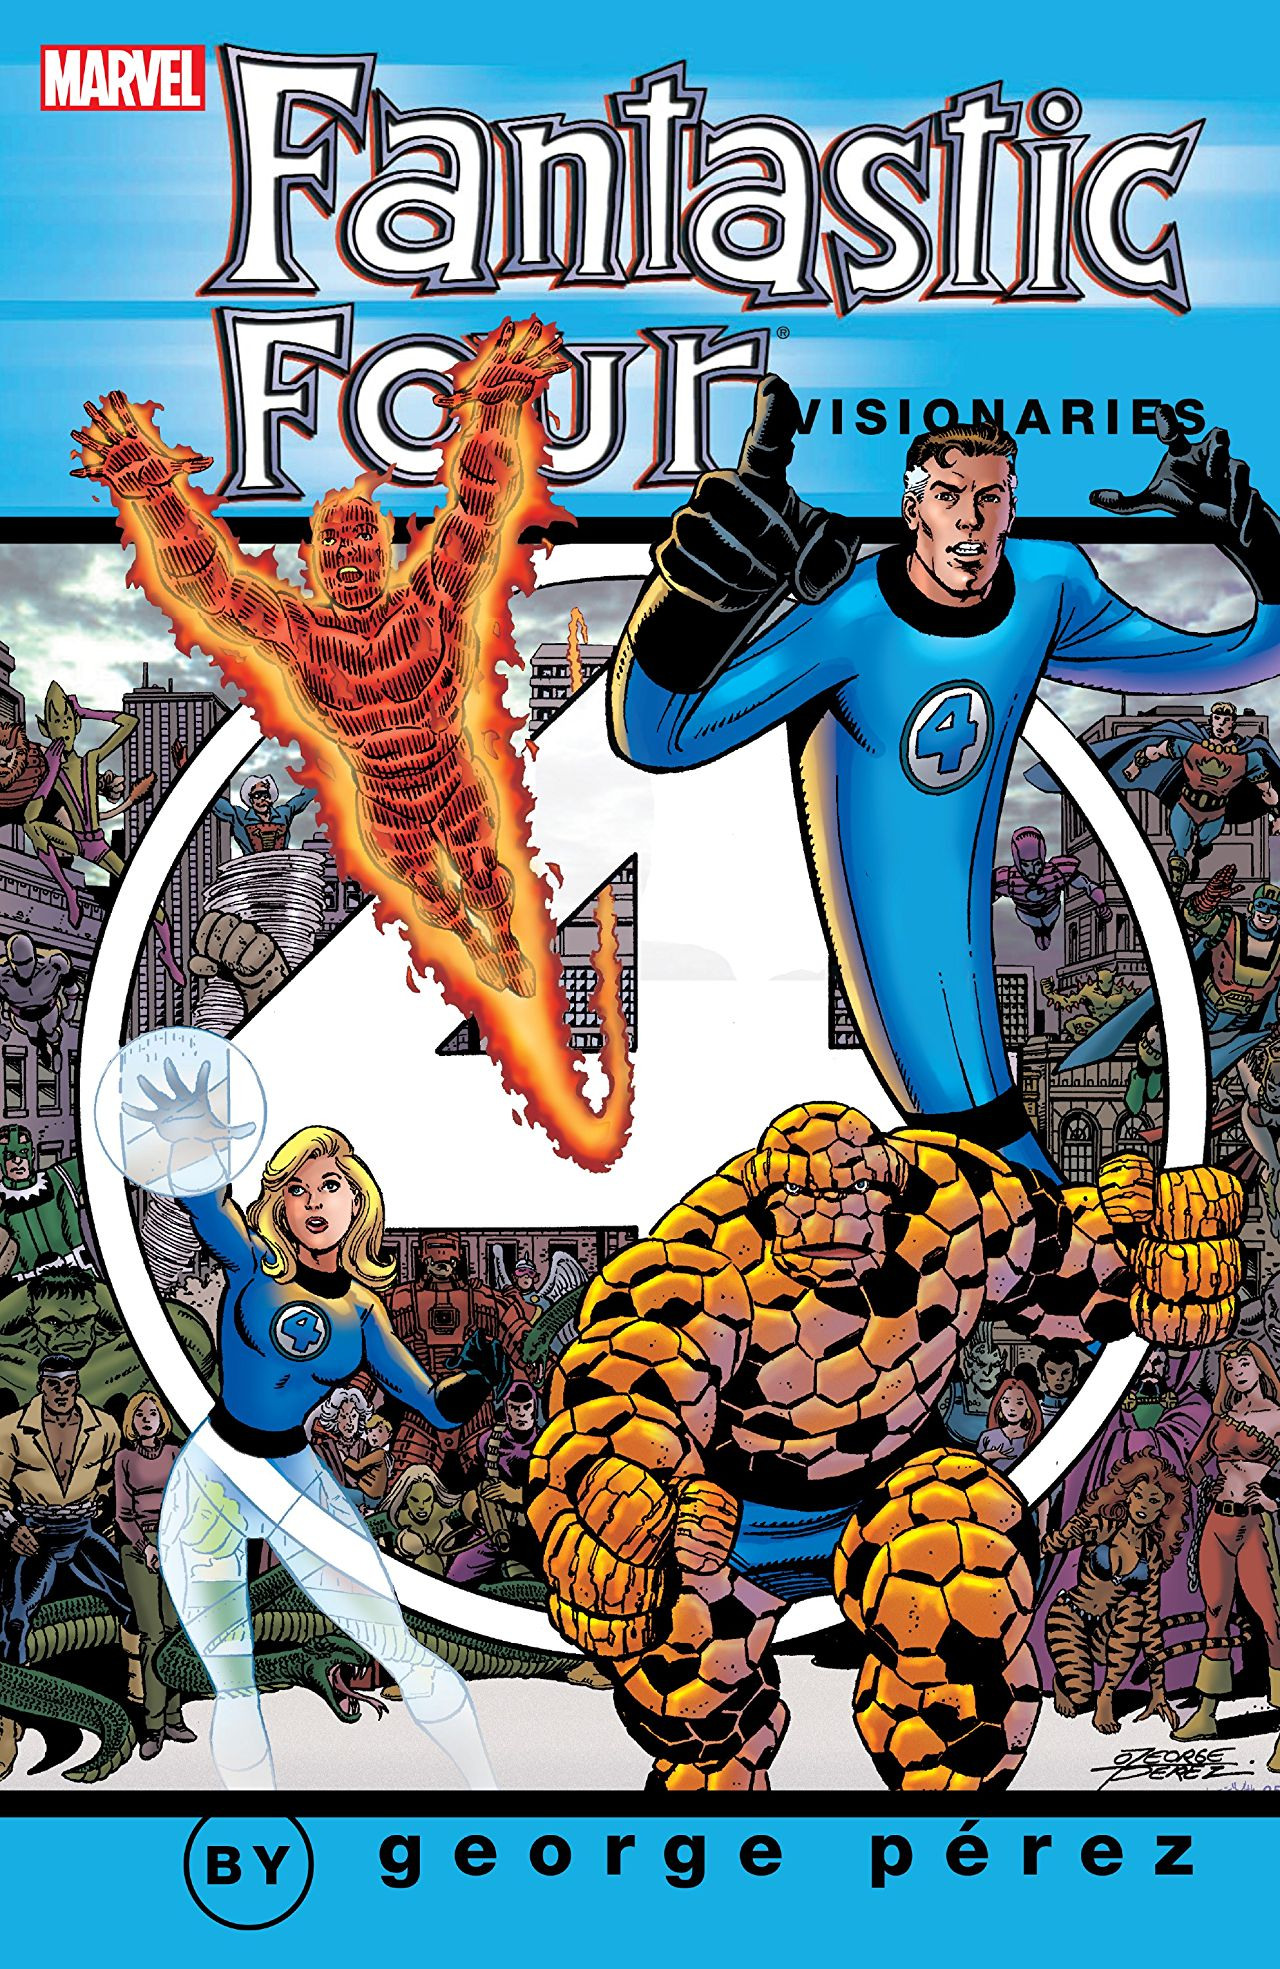 Fantastic Four Visionaries: George Perez TPB Vol 1 1